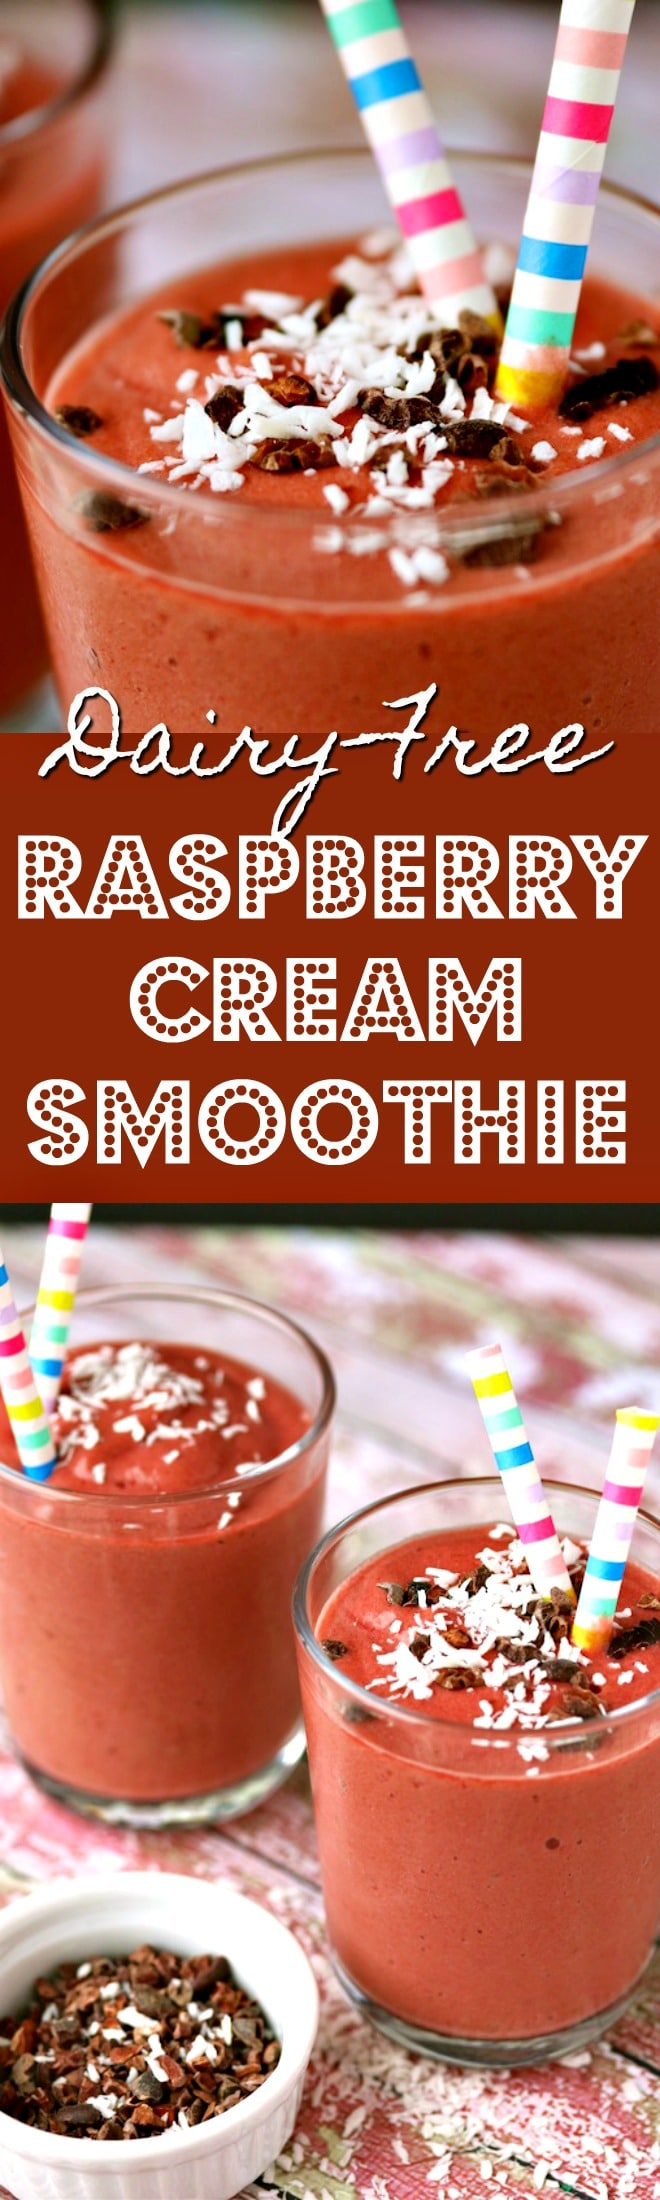 Dairy-Free Raspberry Cream Smoothie made with frozen squash for extra thickness and a serving of veggies! Vegan smoothie recipe, paleo smoothie, dairy free smoothie, green smoothie, raspberry smoothie